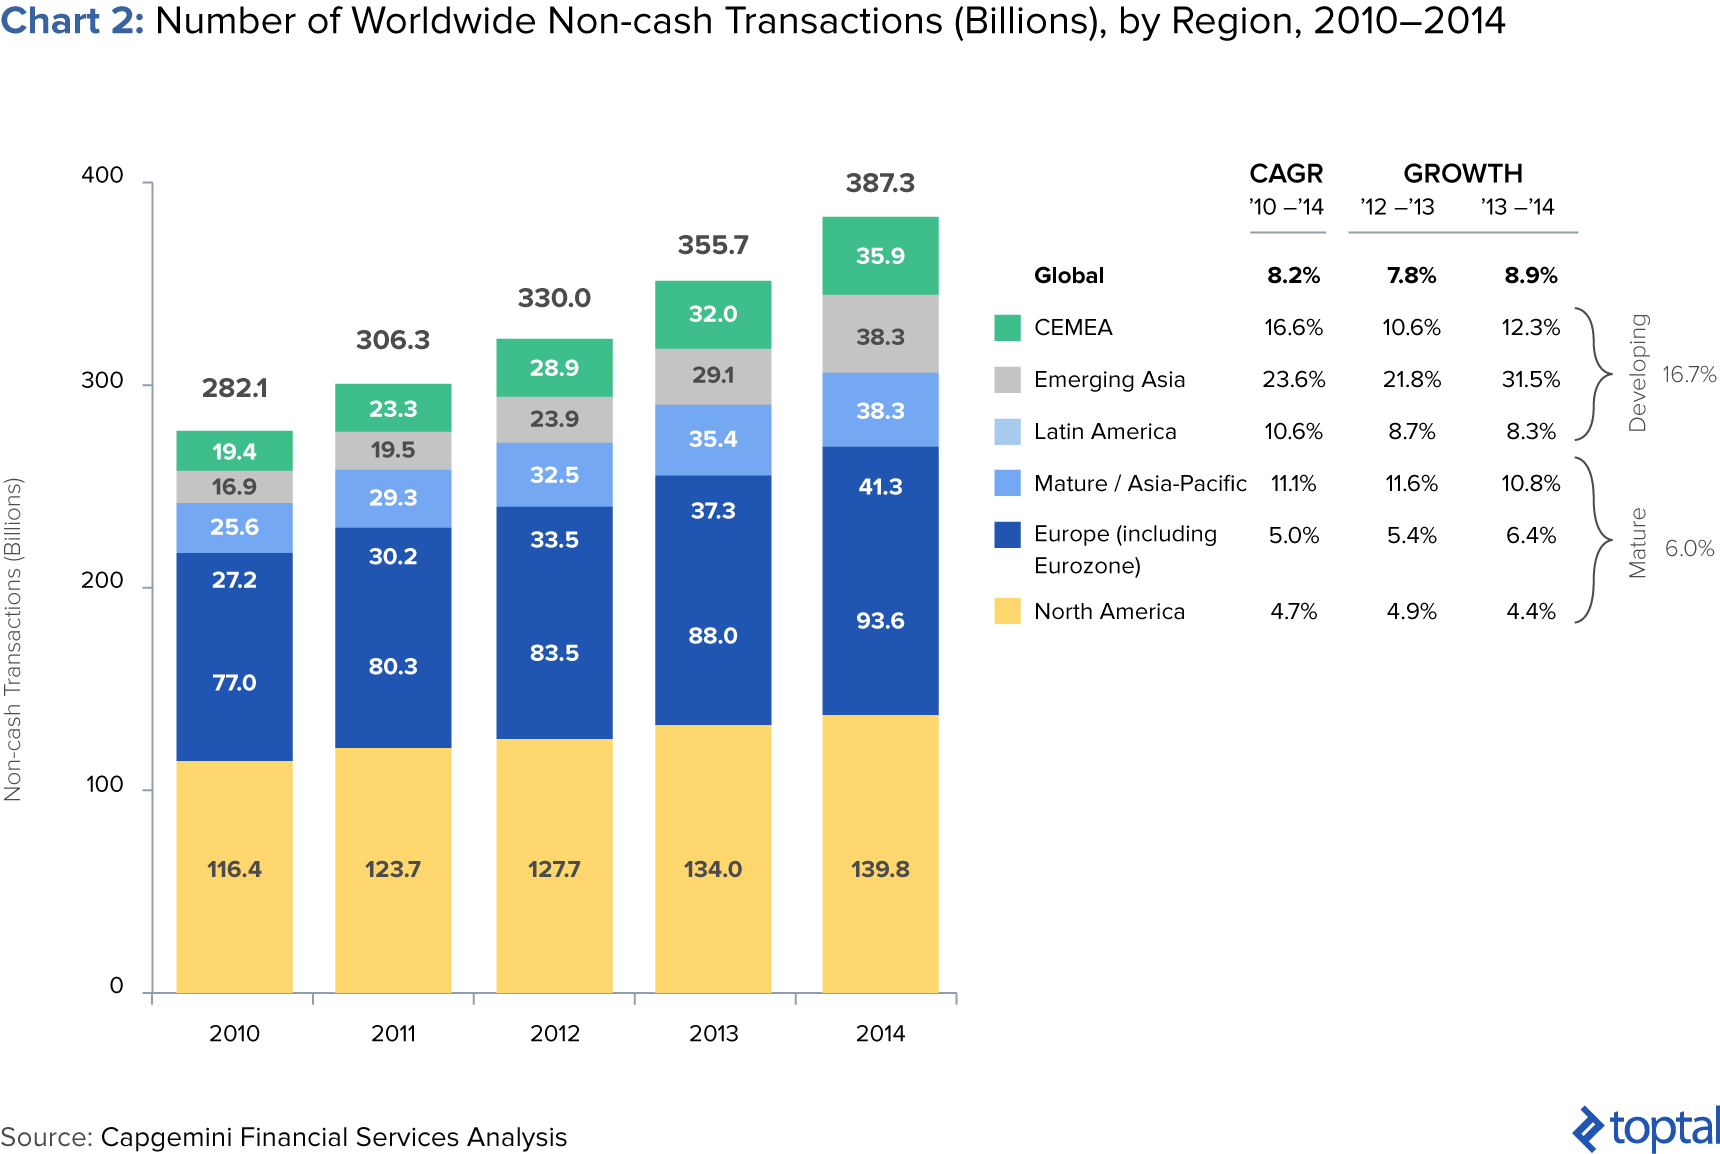 Number of Worldwide Non-cash Transactions (Billions), by Region, 2010-2014